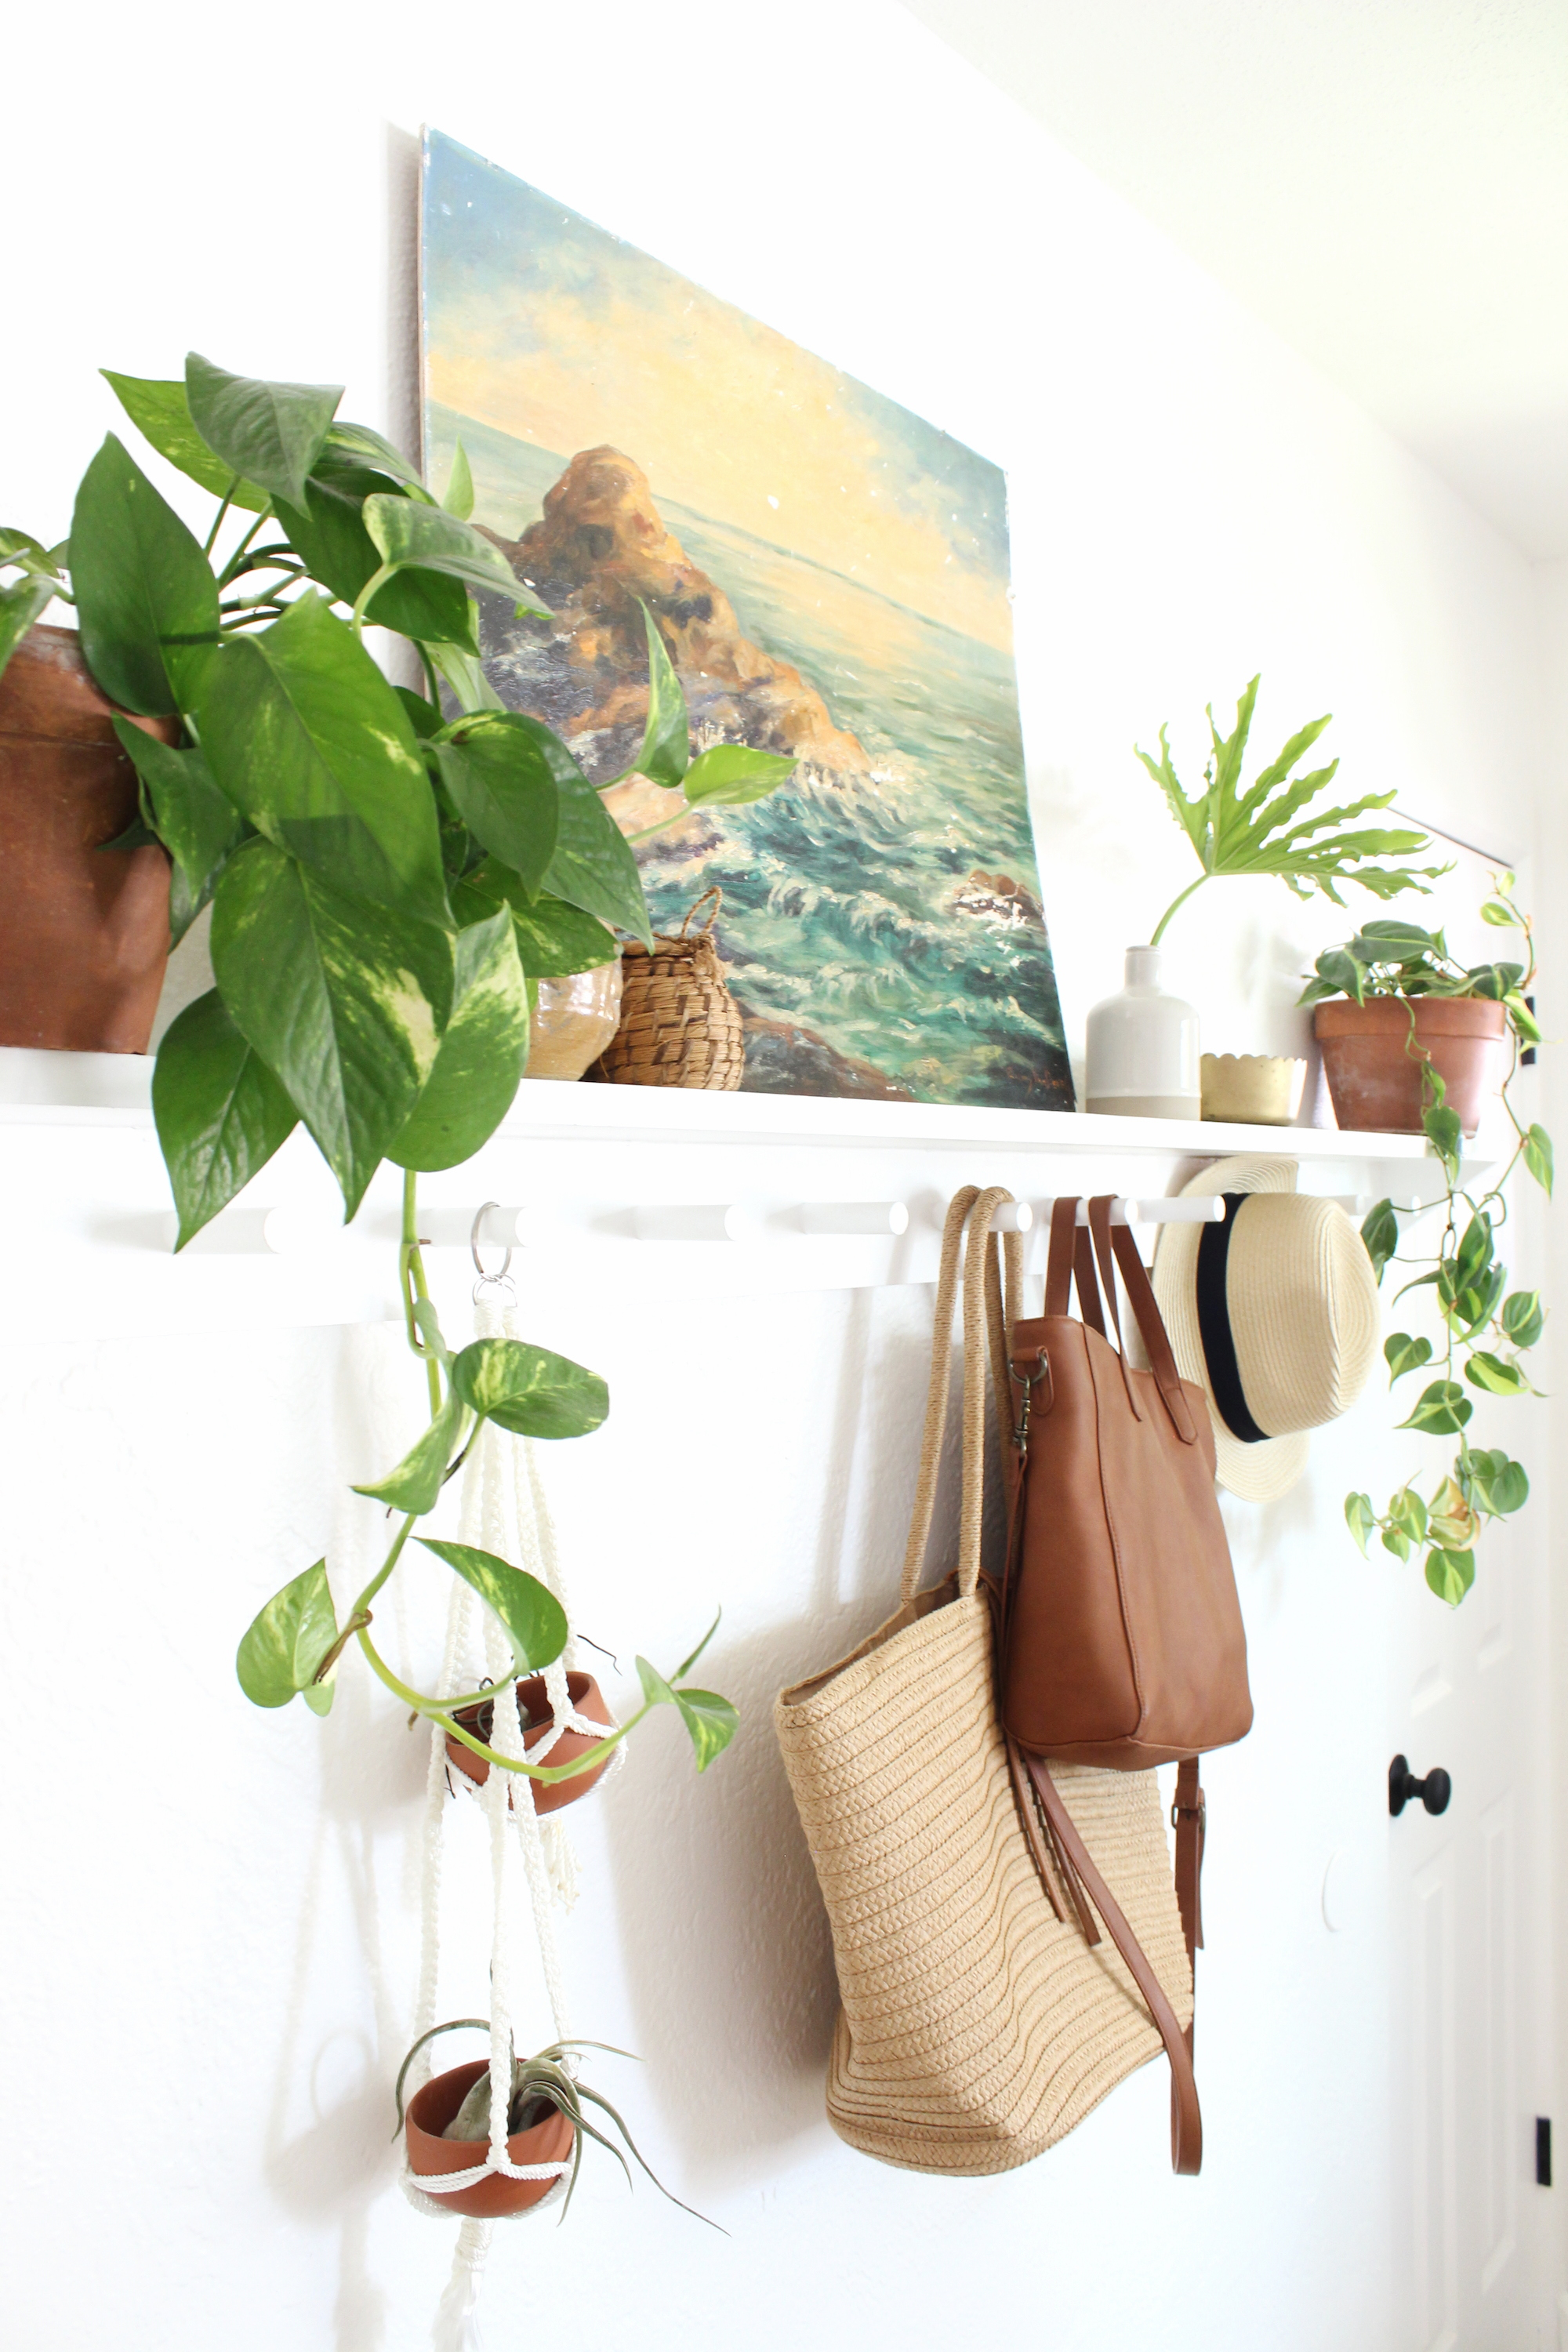 coat rack shelf entry way